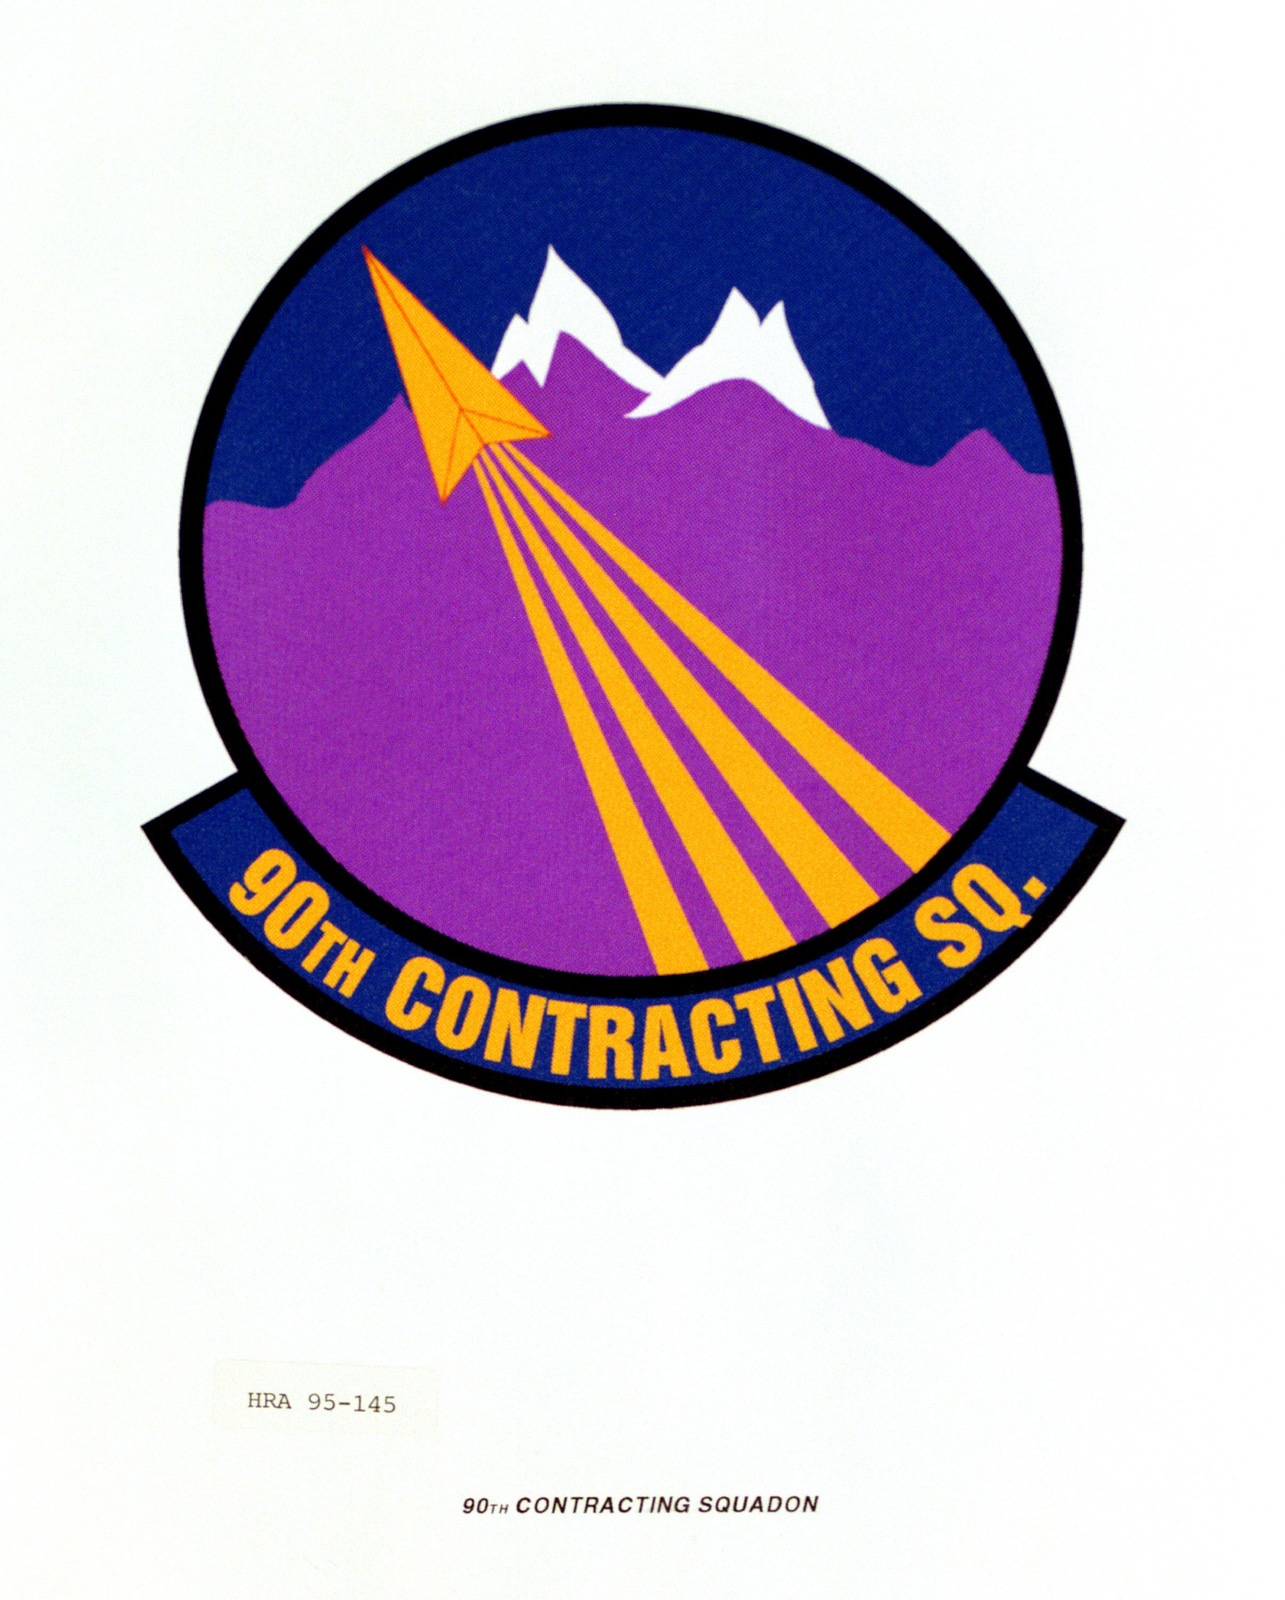 Approved Insignia for the 90th Contracting Squadron. Exact Date Shot Unknown